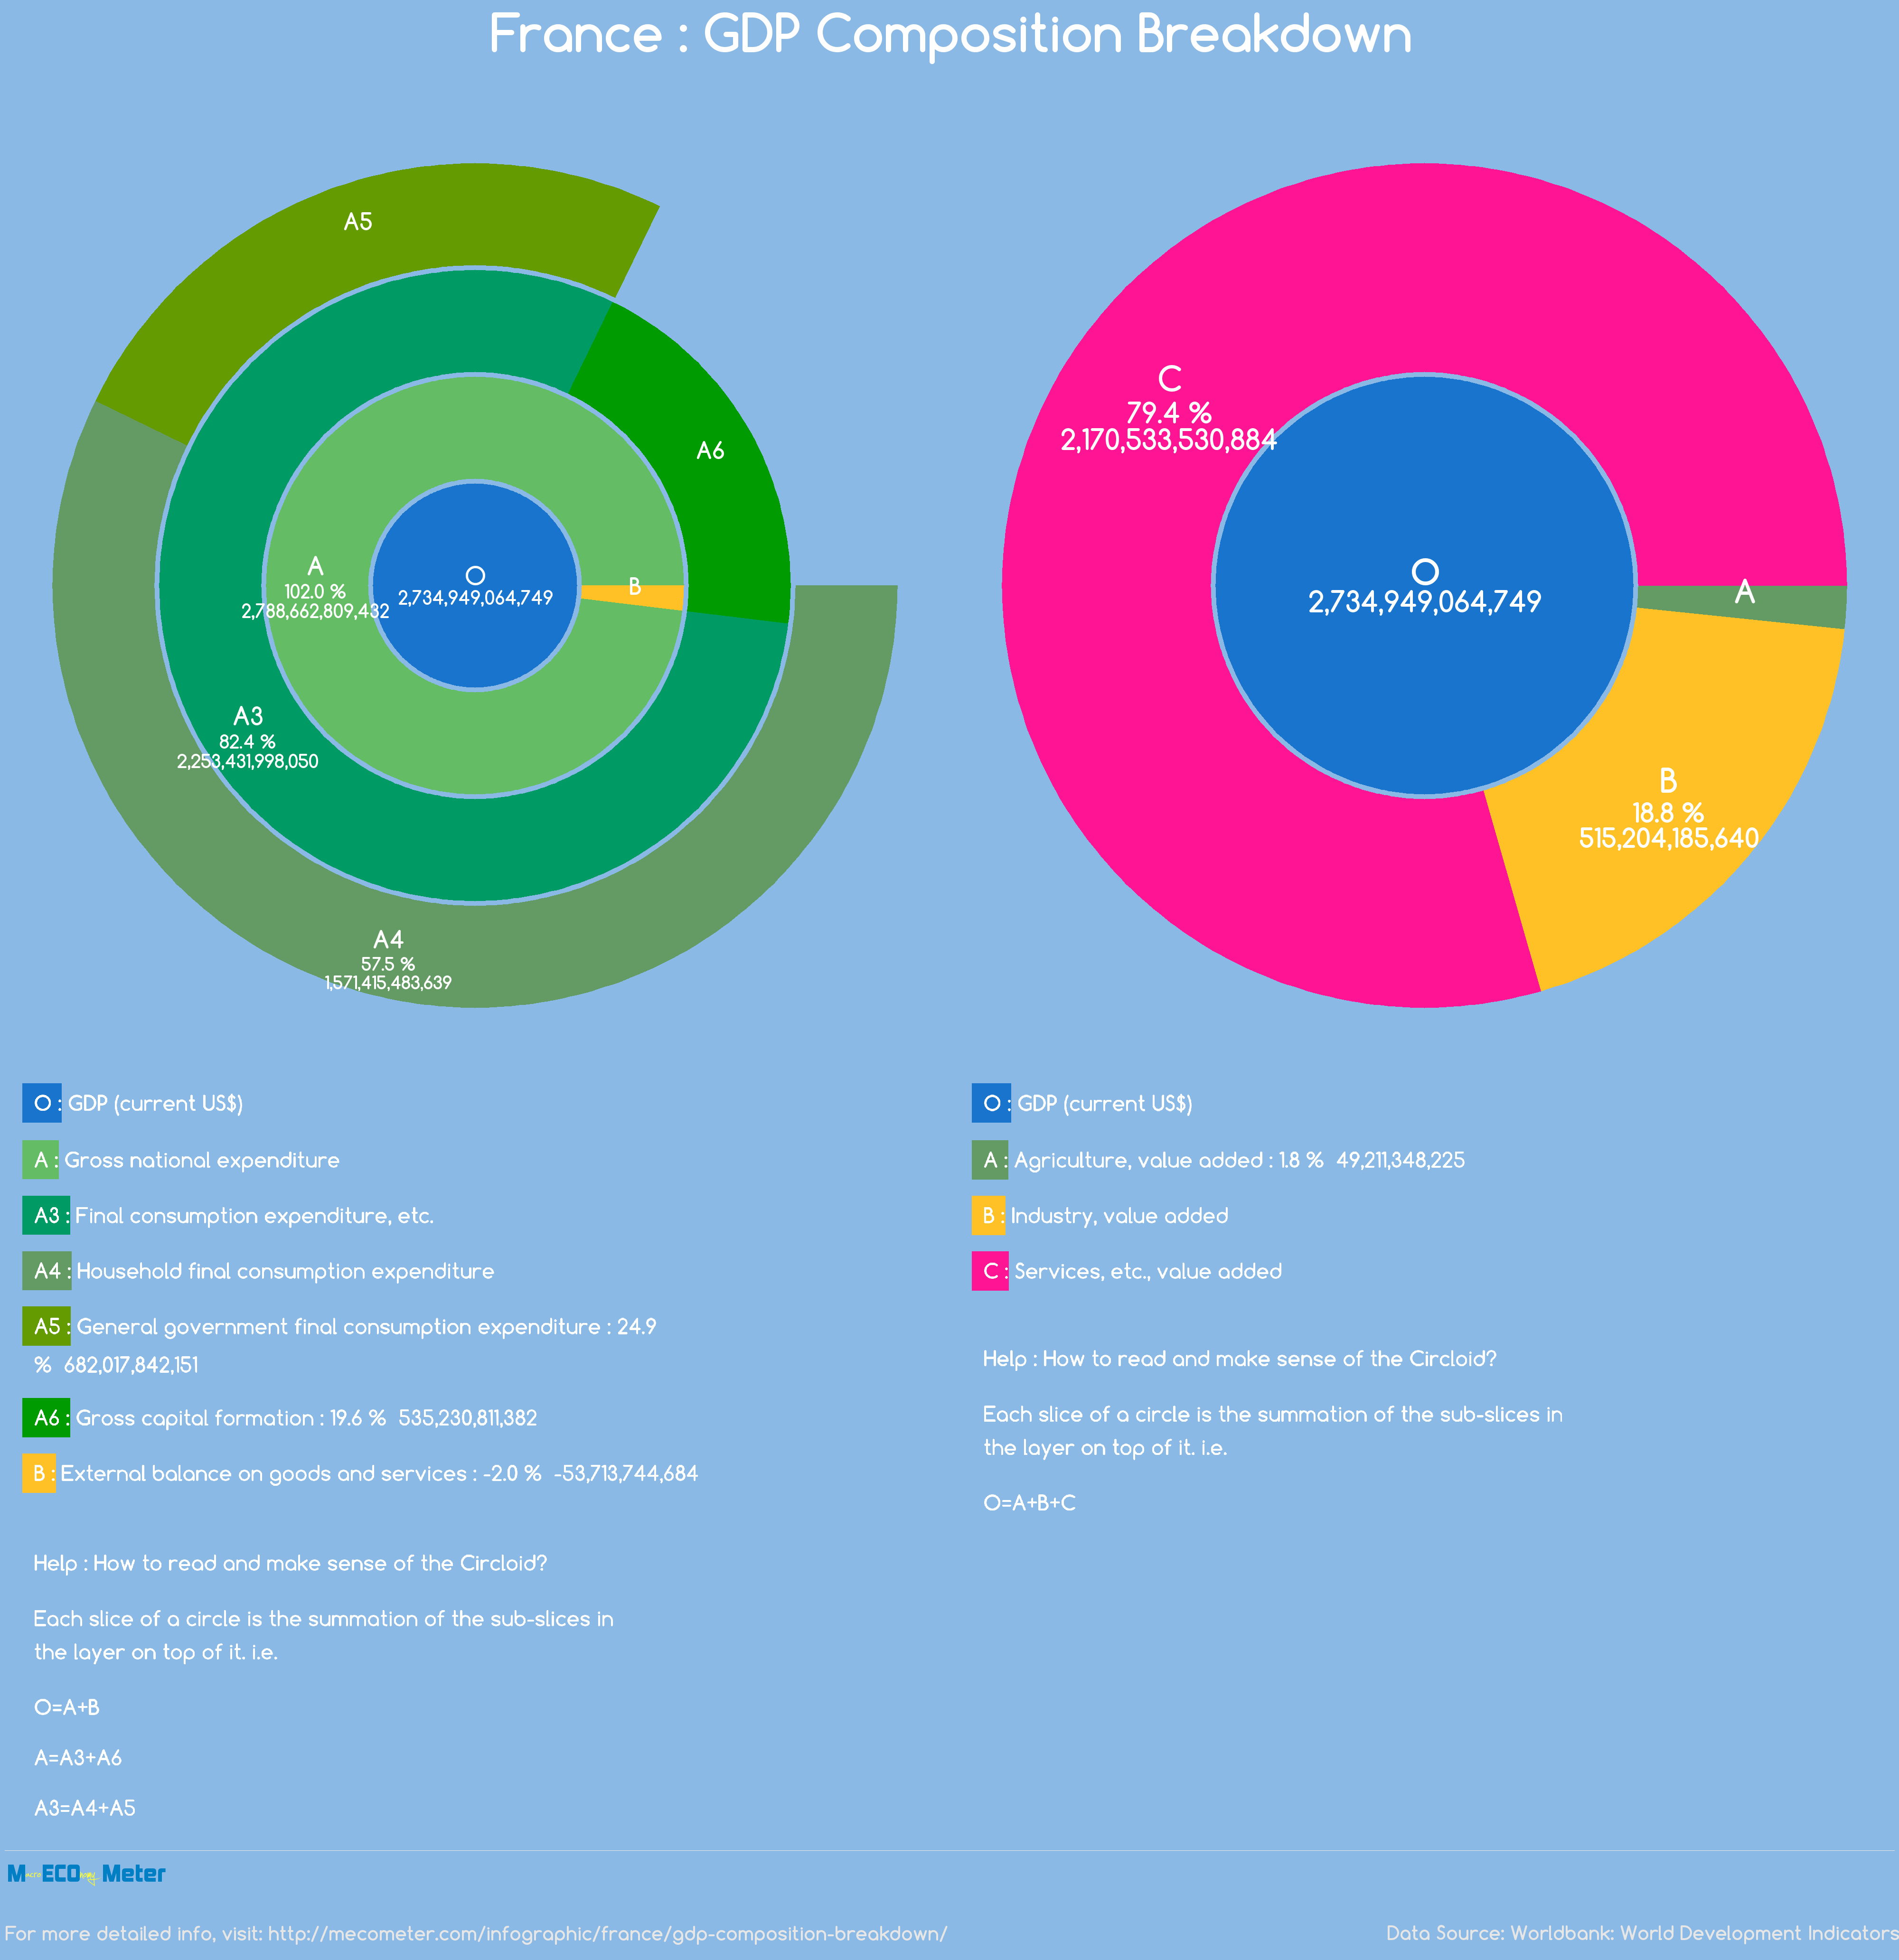 France : GDP Composition Breakdown